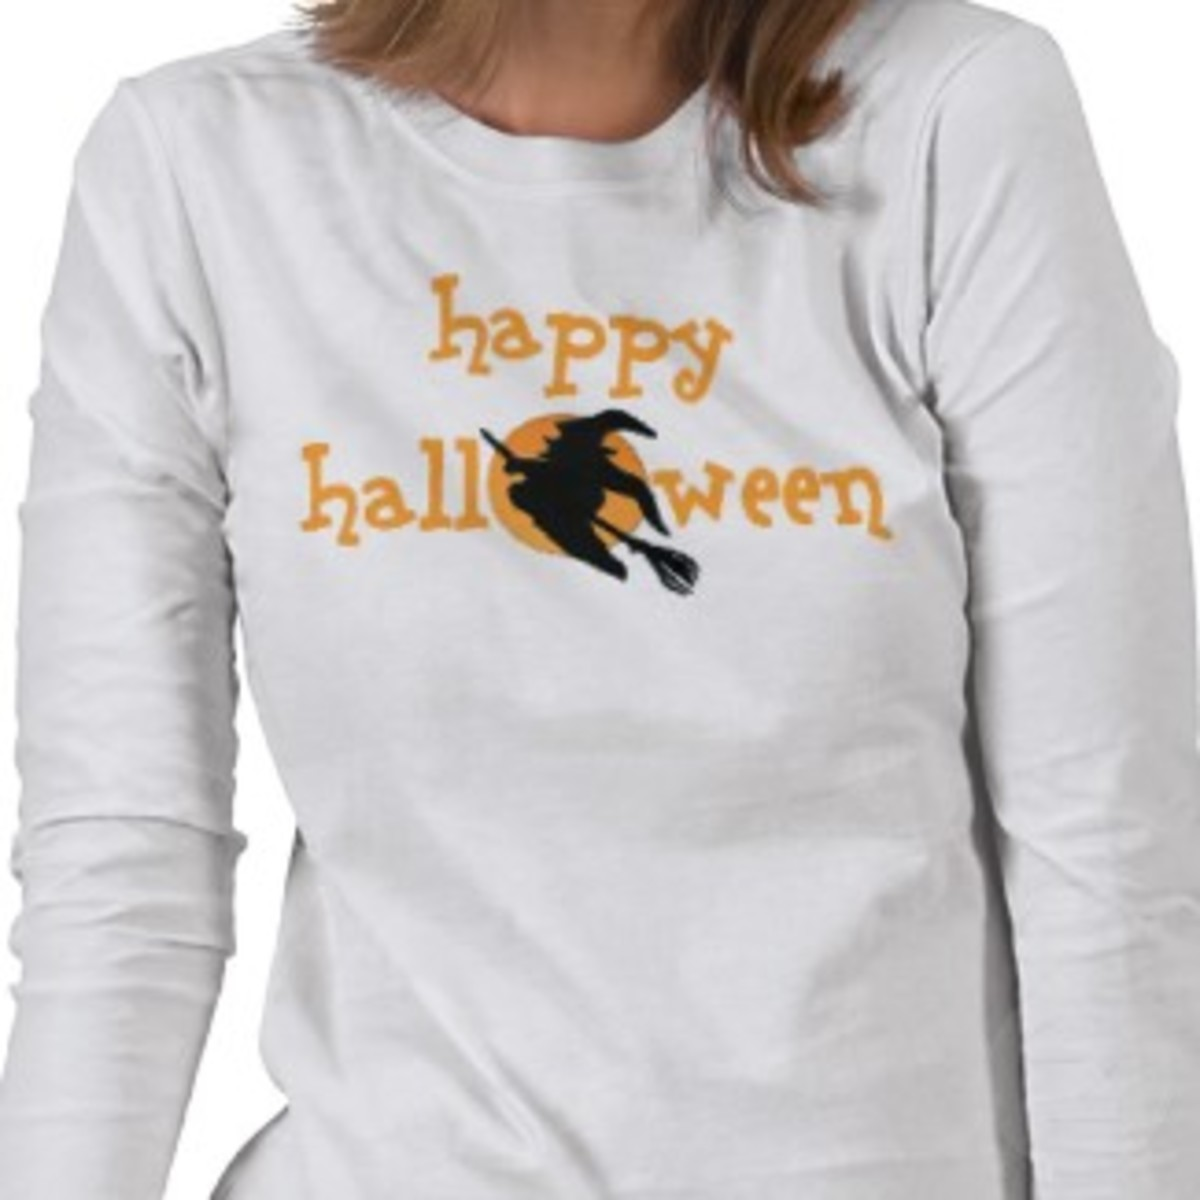 Happy Halloween witch t shirt or pjs created by halloweentreats on Zazzle